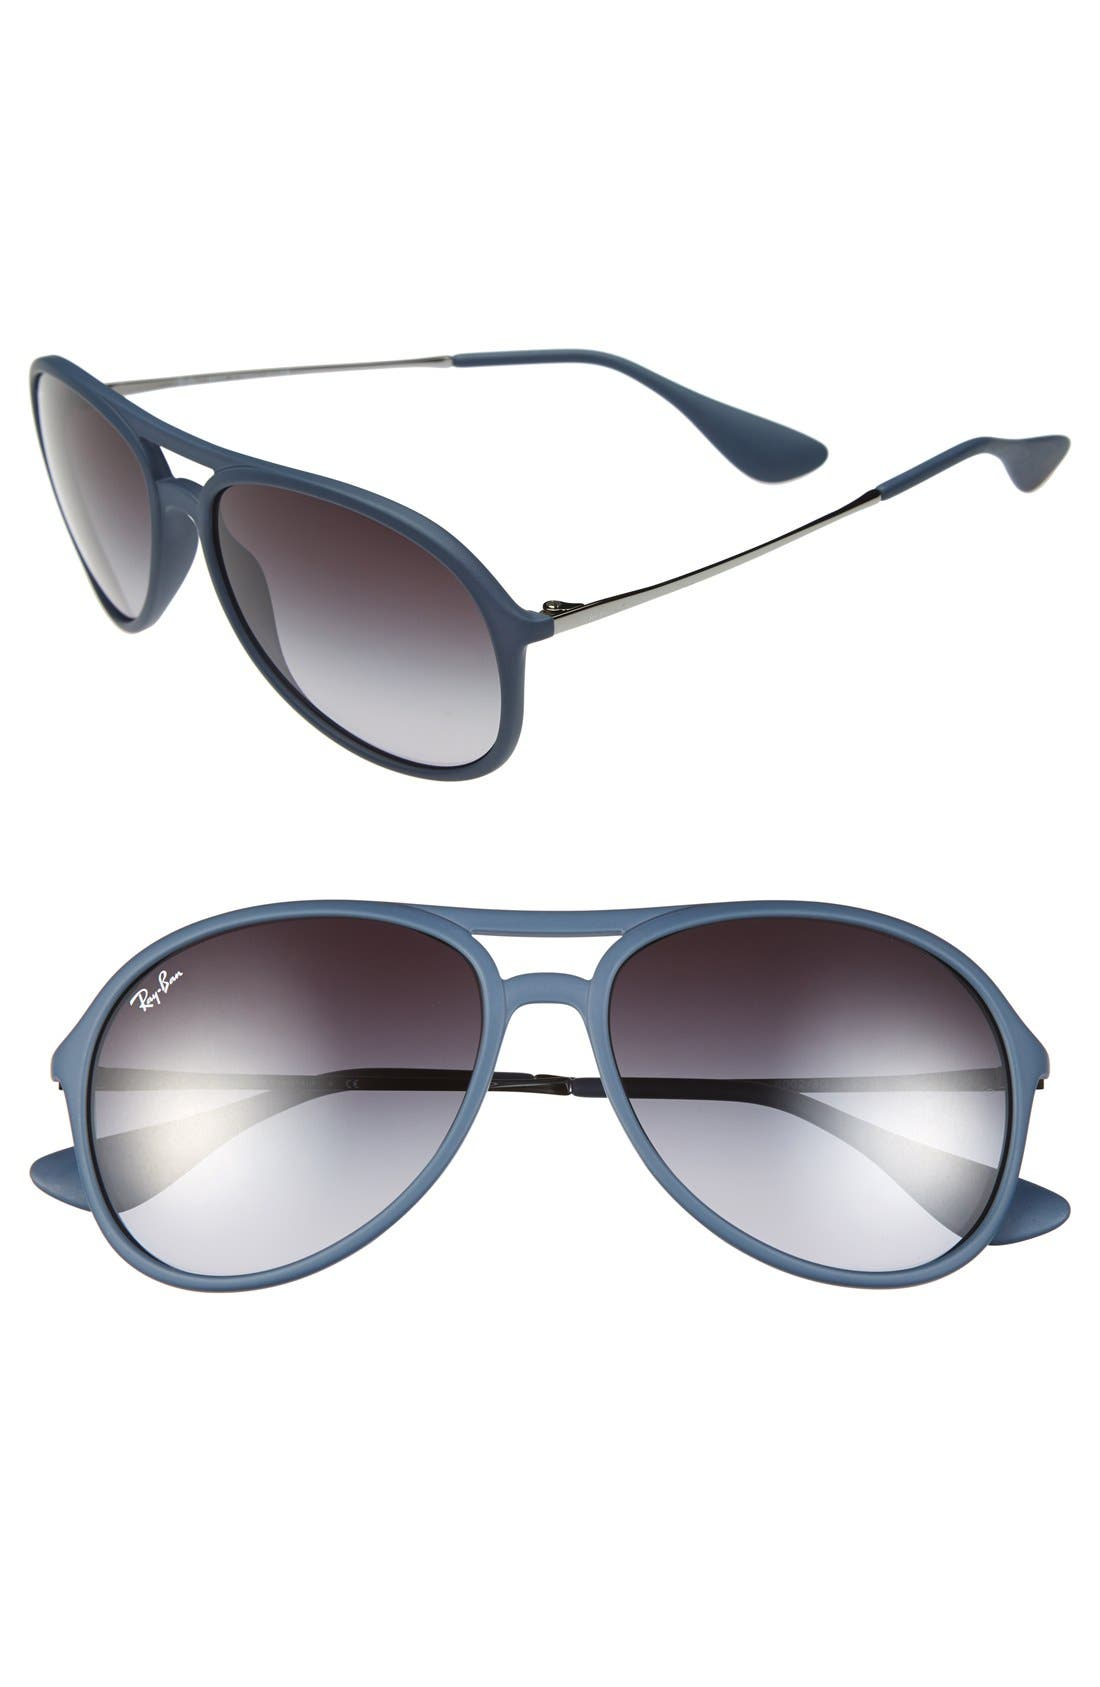 Main Image - Ray-Ban 'Youngster' 55mm Sunglasses